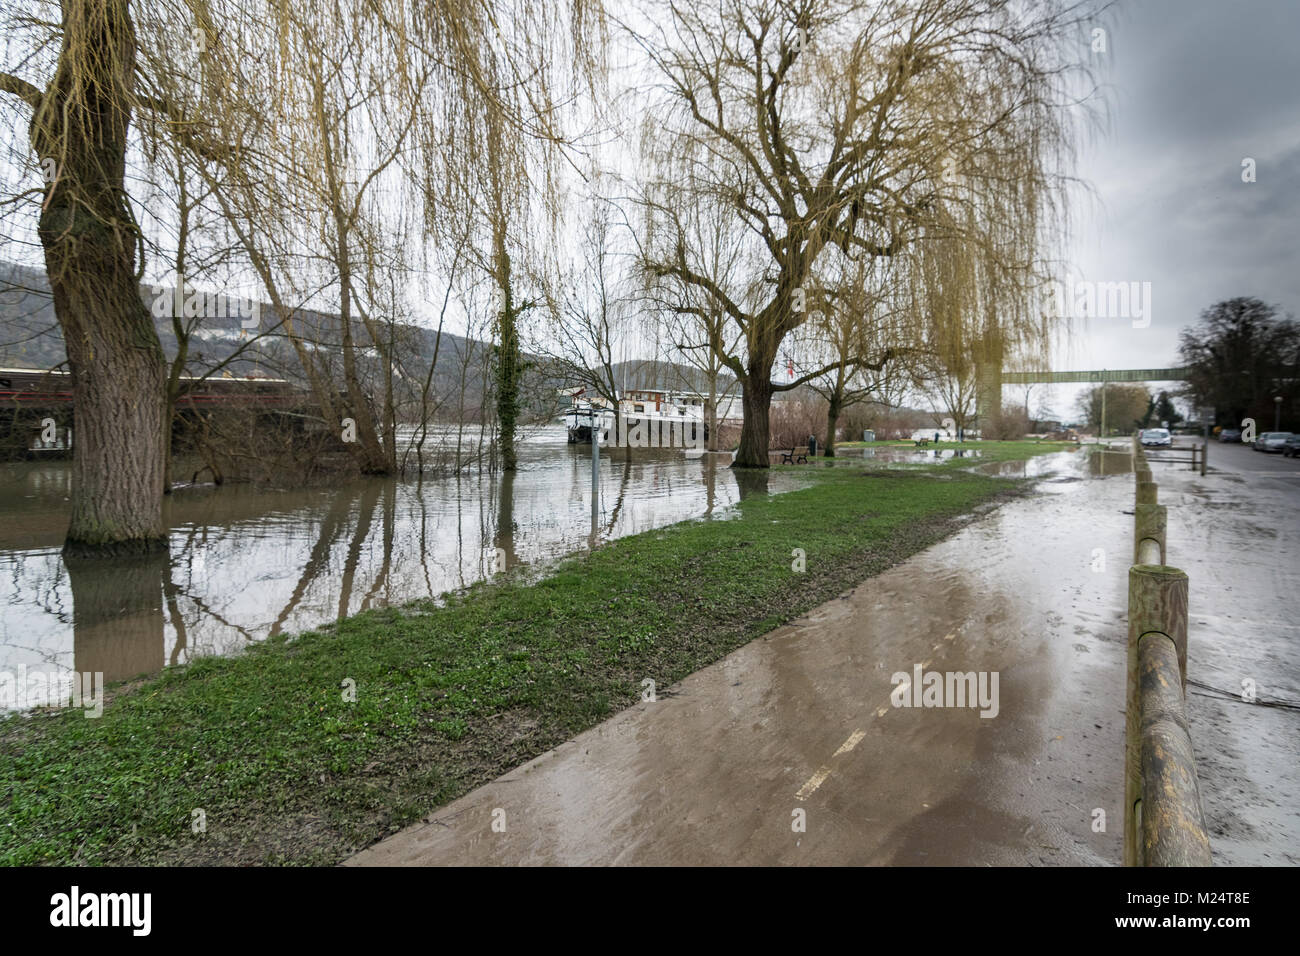 Vernon, France - 4th February 2018 : River Seine flooding roads in Vernon, France, 2018 - Stock Image